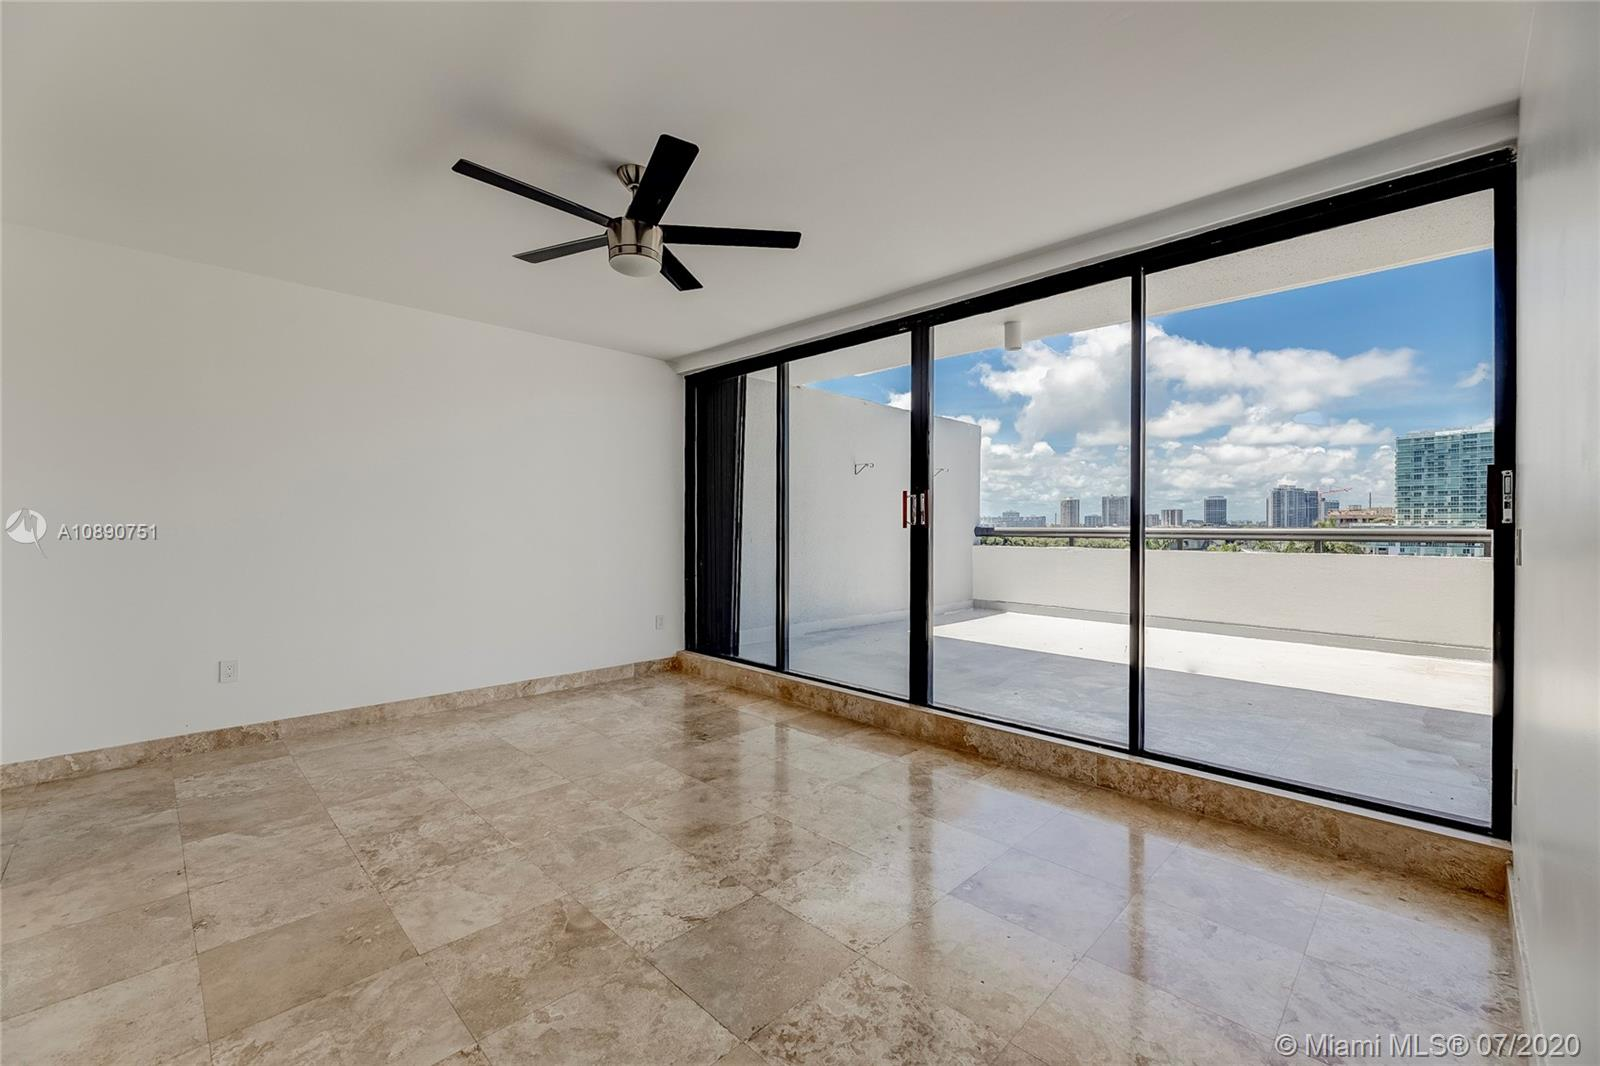 Photo of 425 Poinciana Island Drive #1444, Sunny Isles Beach, Florida, 33160 - View through floor to ceiling windows upon entrance to primary bedroom